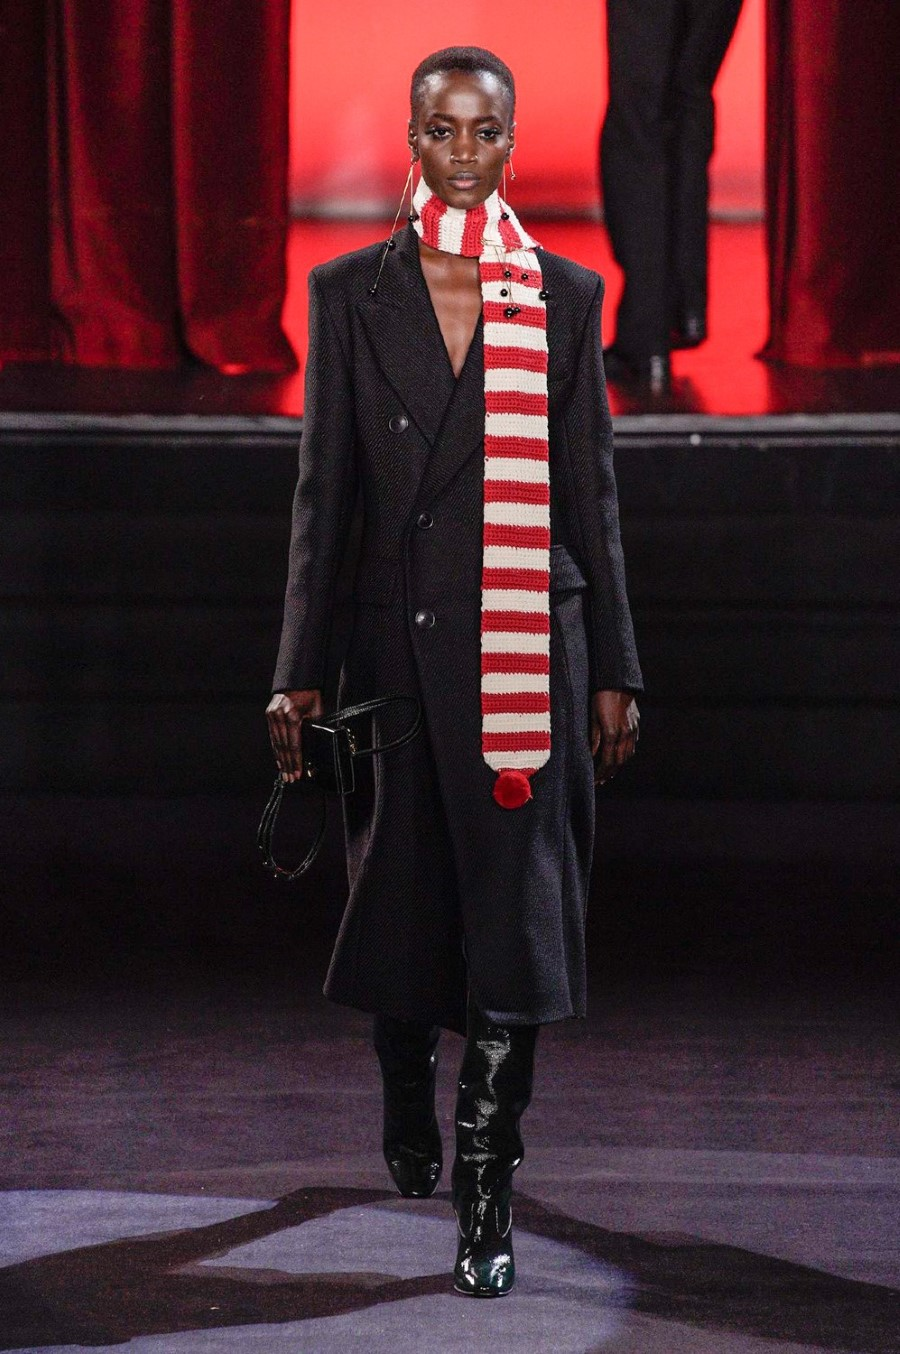 AMI Alexandre Mattiussi Fall Winter 2020 - Paris Fashion Week Men's